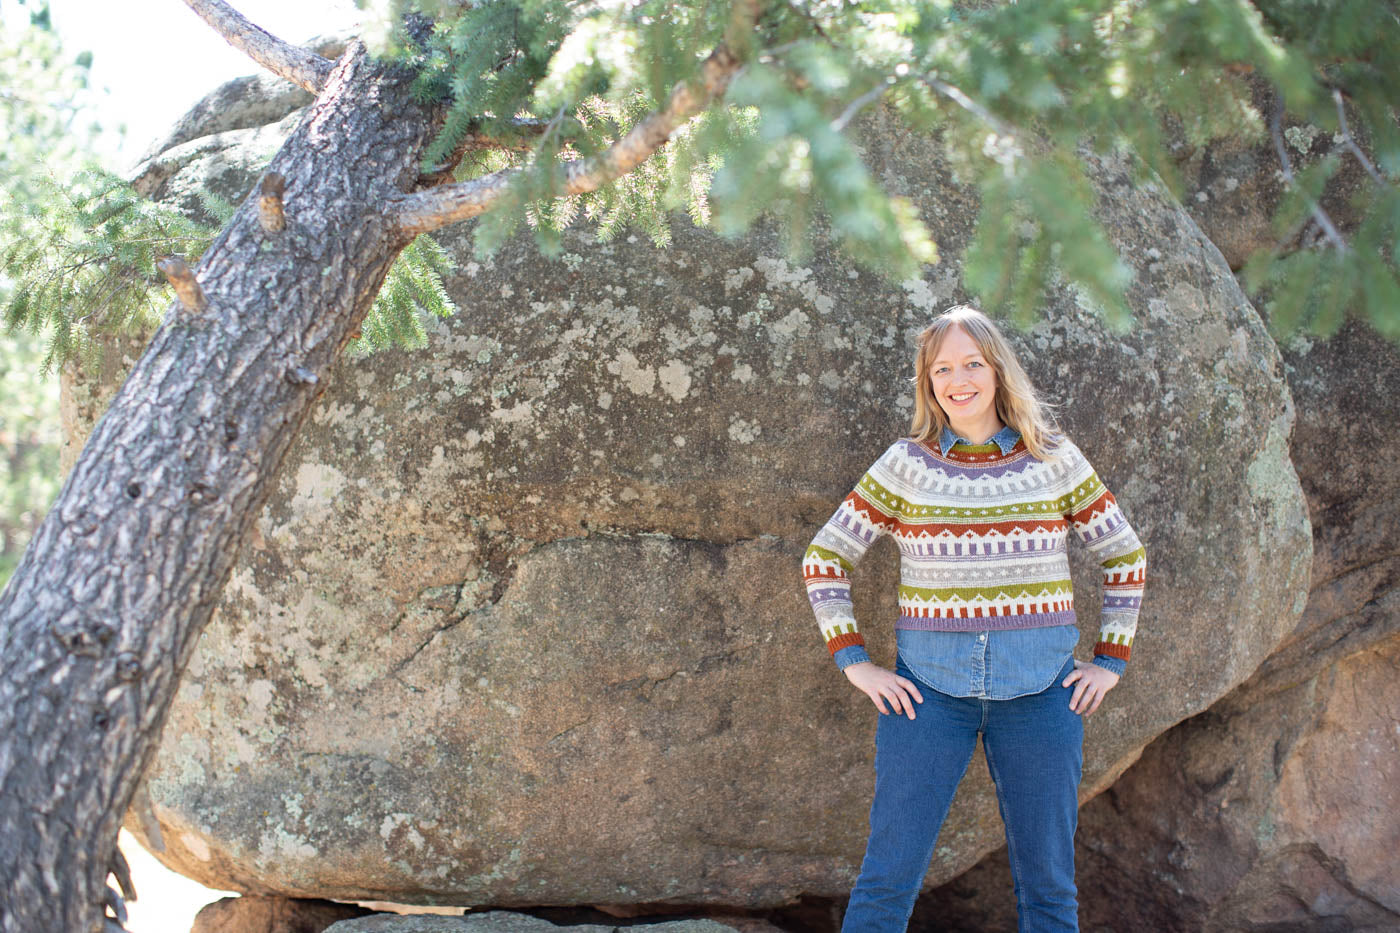 Women standing in front of a large mountain rock, facing the camera, wearing a mutli-colored knitted sweater and jeans.  Women has her hands on her hips looking at the camera smiling.  In the foreground is a tilted evergreen tree.